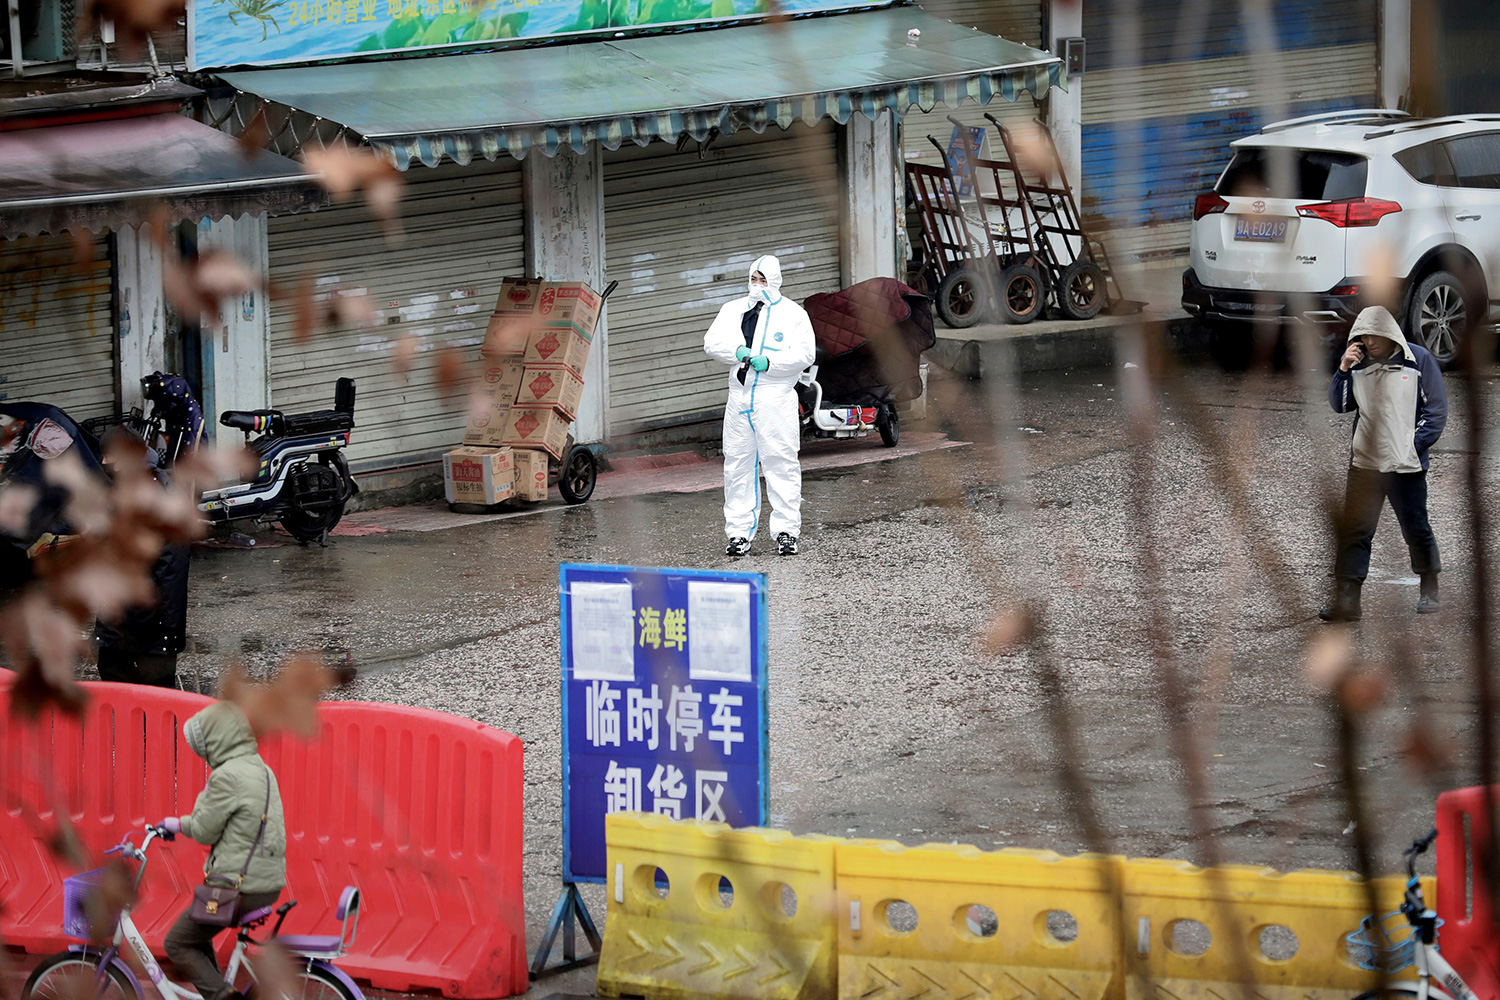 Picture shows the entrance to the market from a distance with a man wearing full protective gear stands out front.